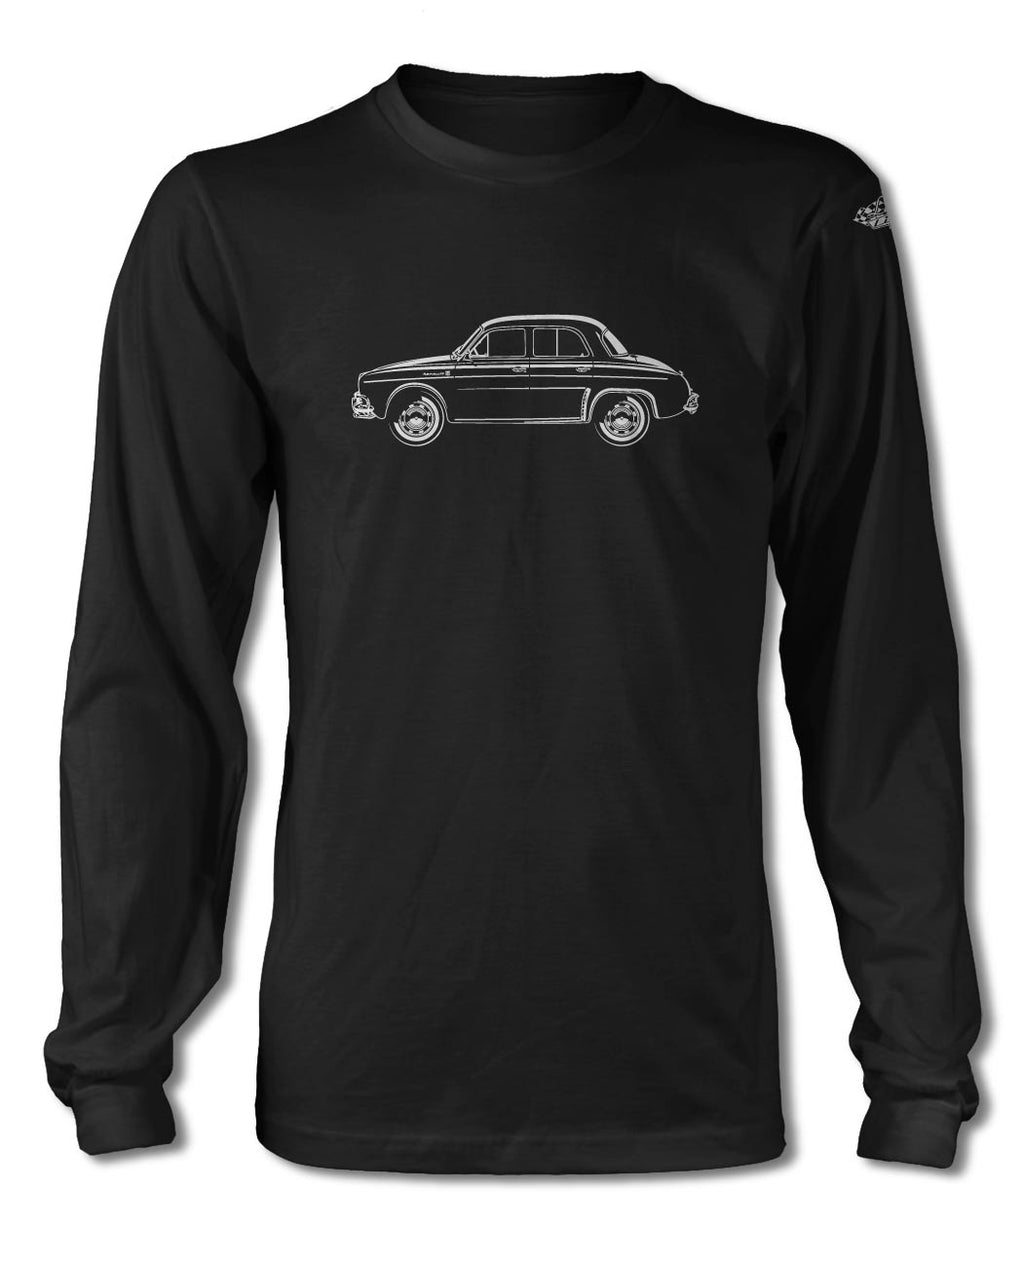 Renault Dauphine Ondine Kilowatt T-Shirt - Long Sleeves - Side View